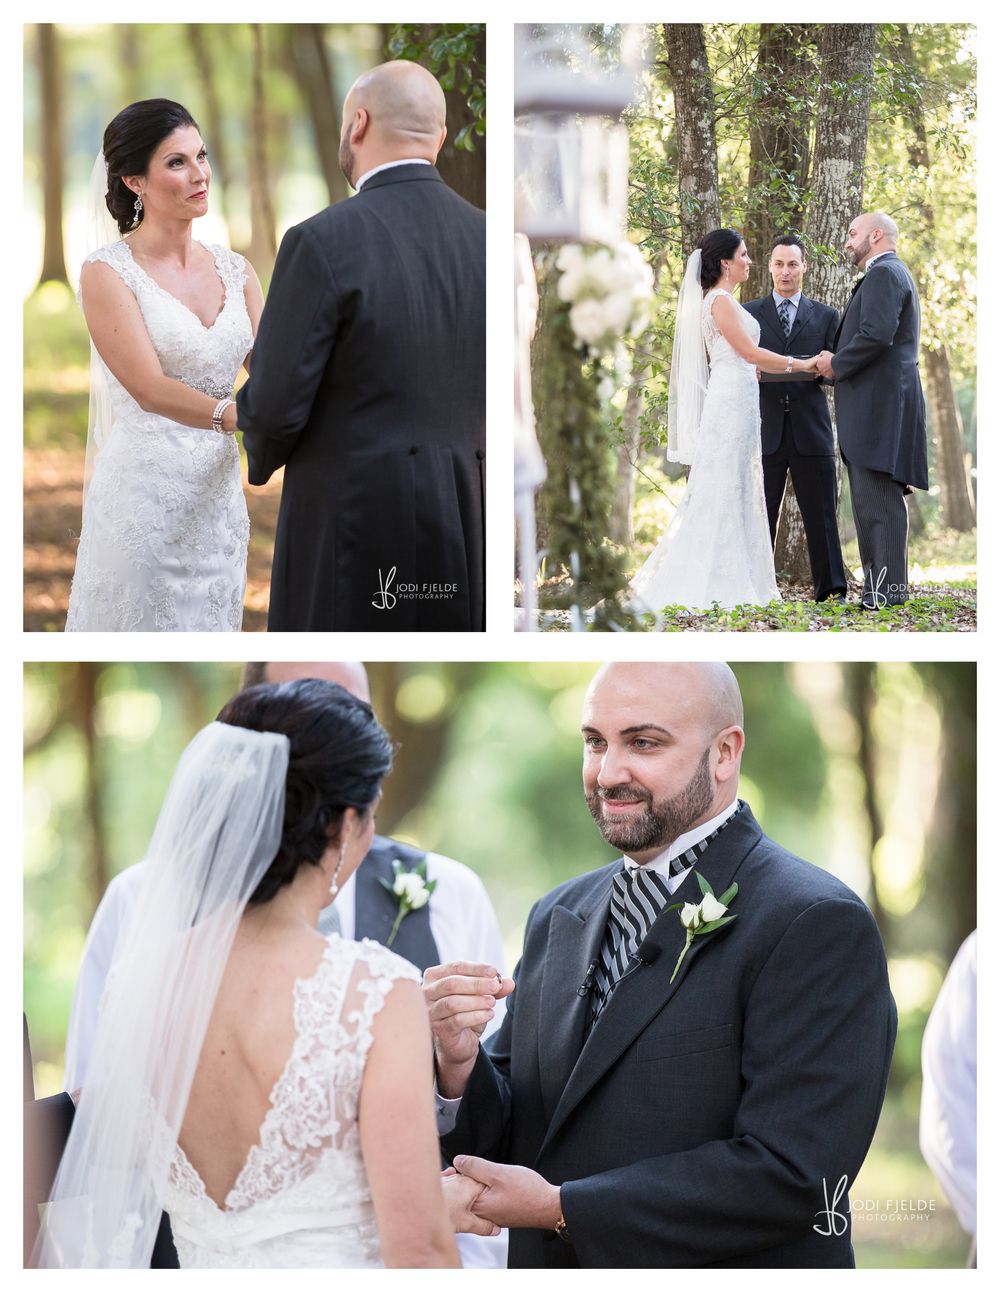 Highland_Manor_Apopka_Florida_wedding_Jackie_&_Tim_photography_jodi_Fjelde_photography-16.jpg